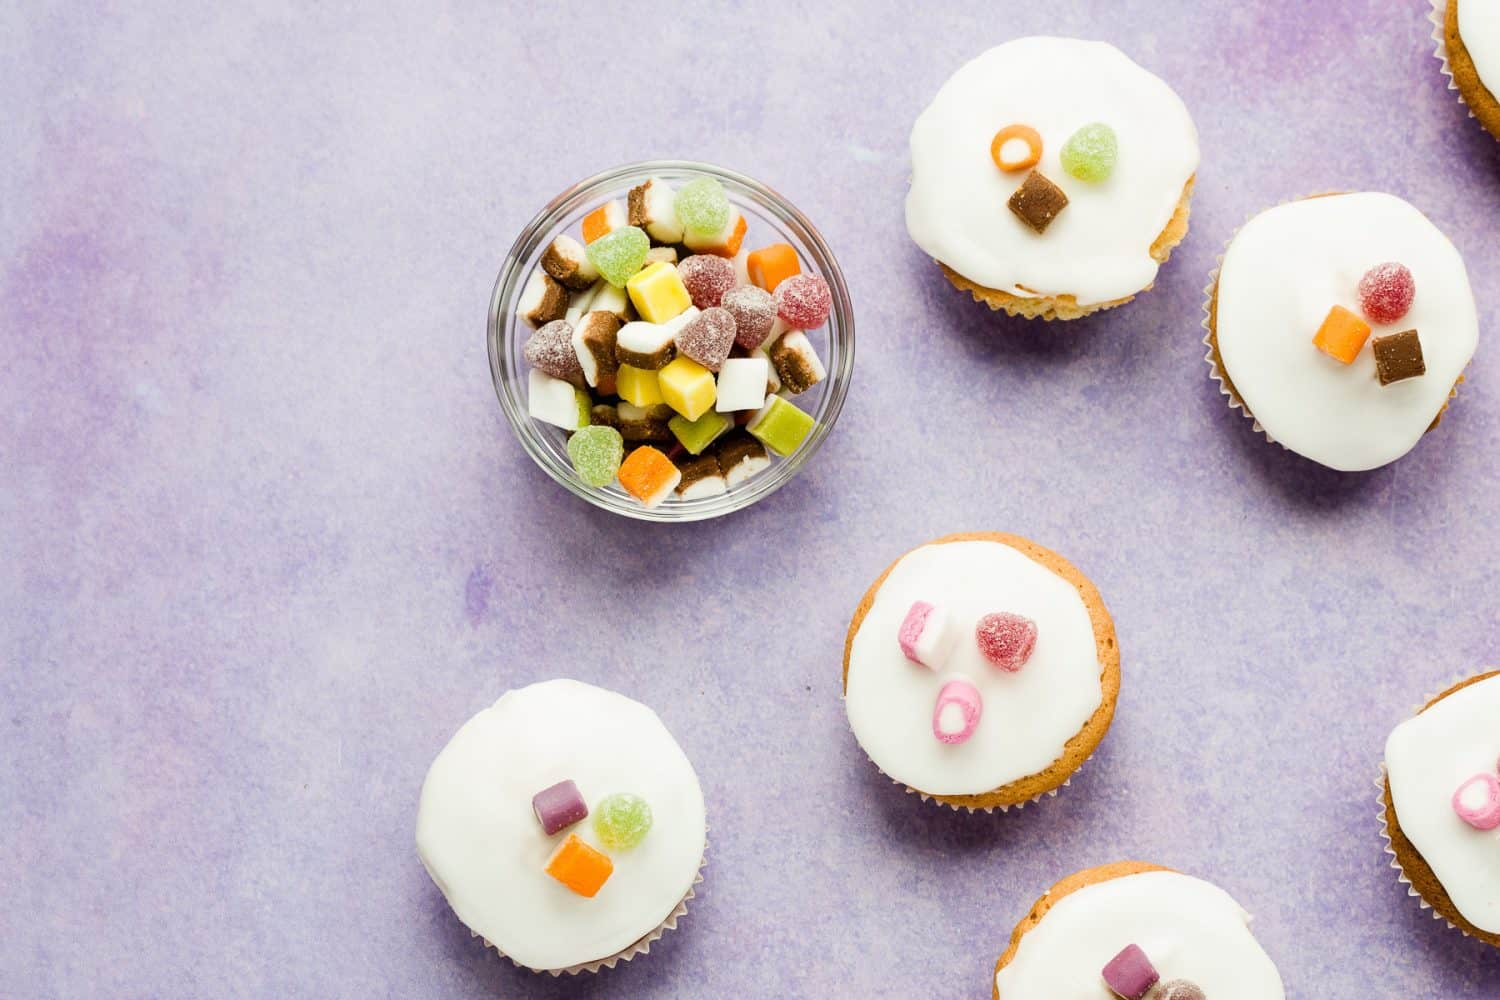 A bowl of dolly mixture next to some cake buns.